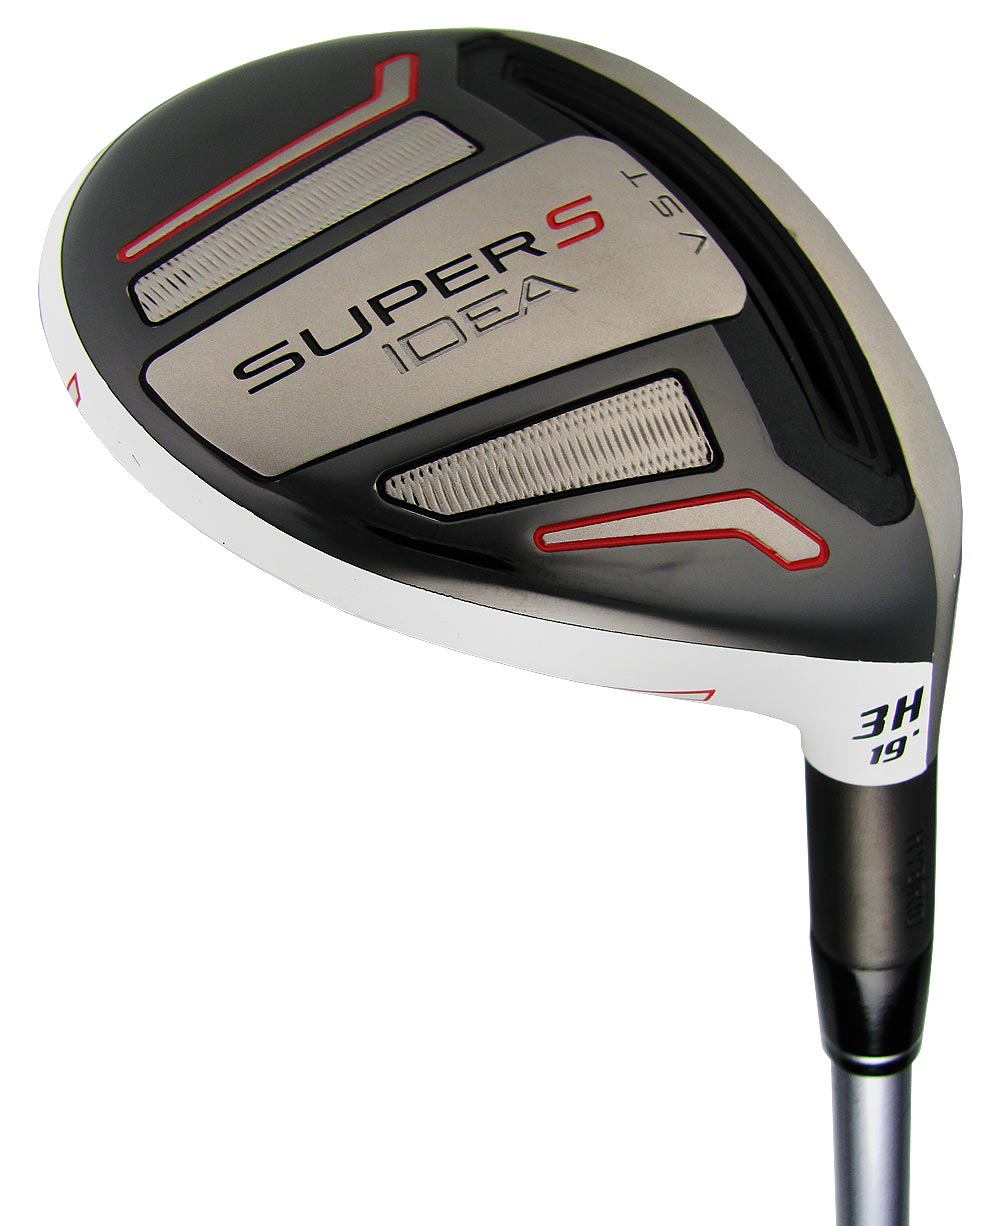 10 Best Hybrid Golf Clubs For 2017 | Page 4 of 4 | Sport ...